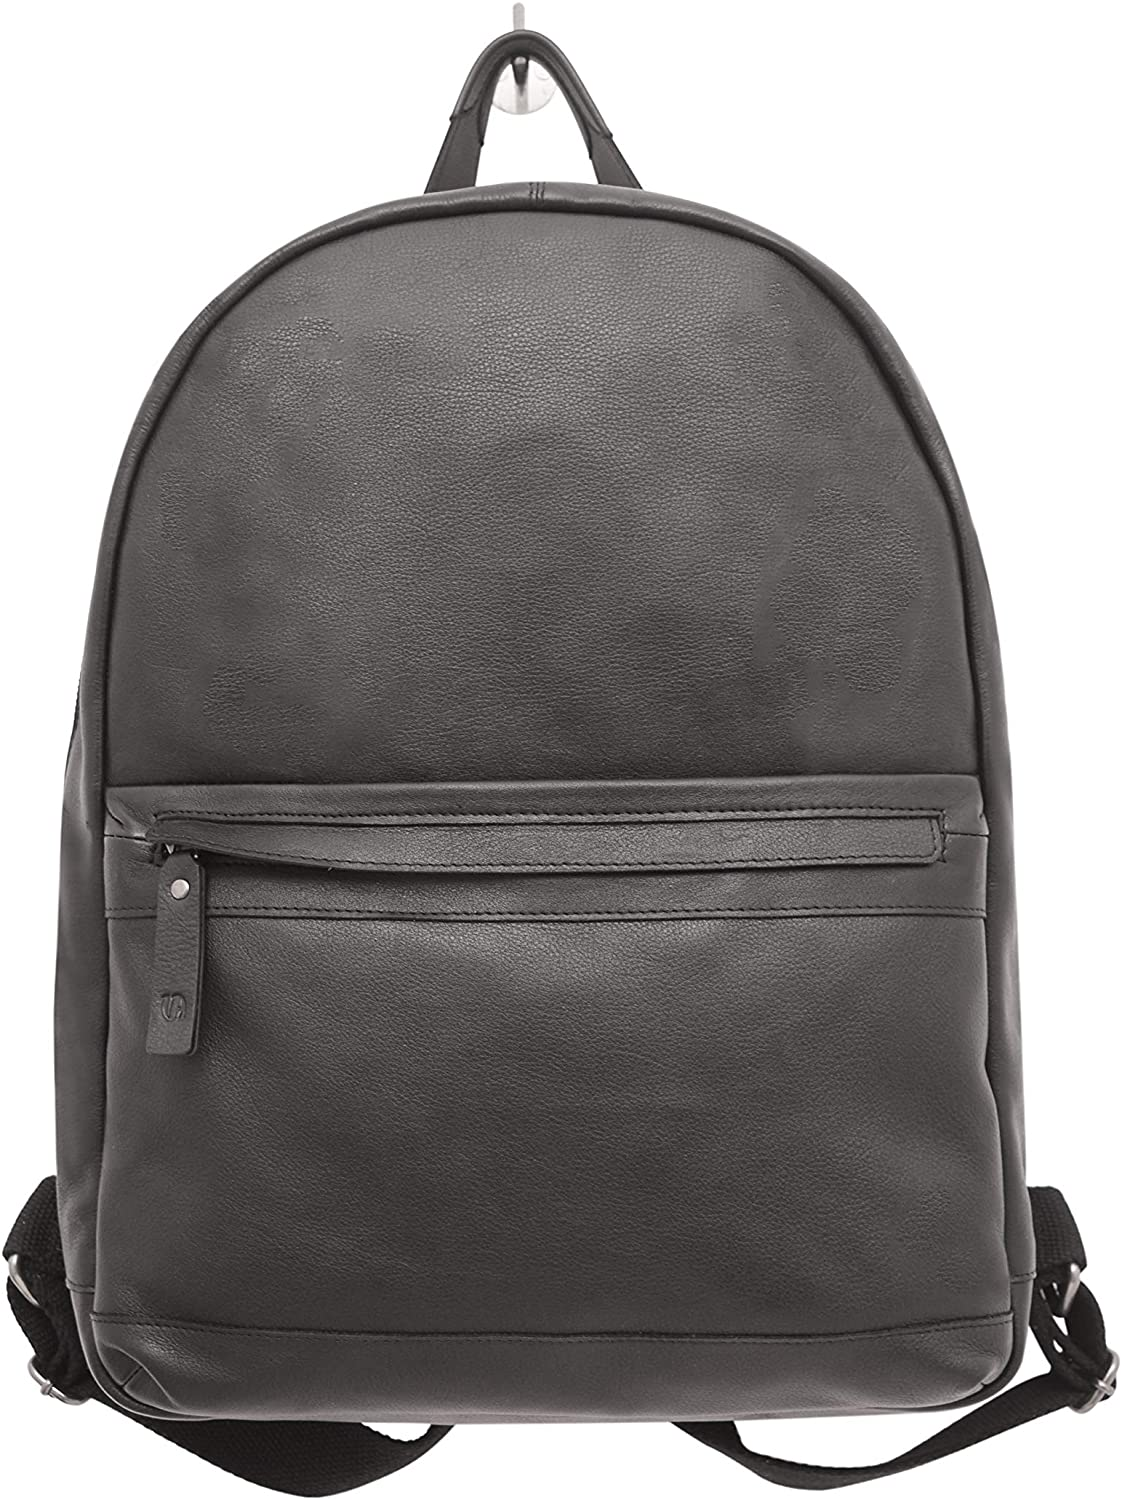 Men's Leather Backpack 13''L x 11''W x 5''D inches Black V-élan